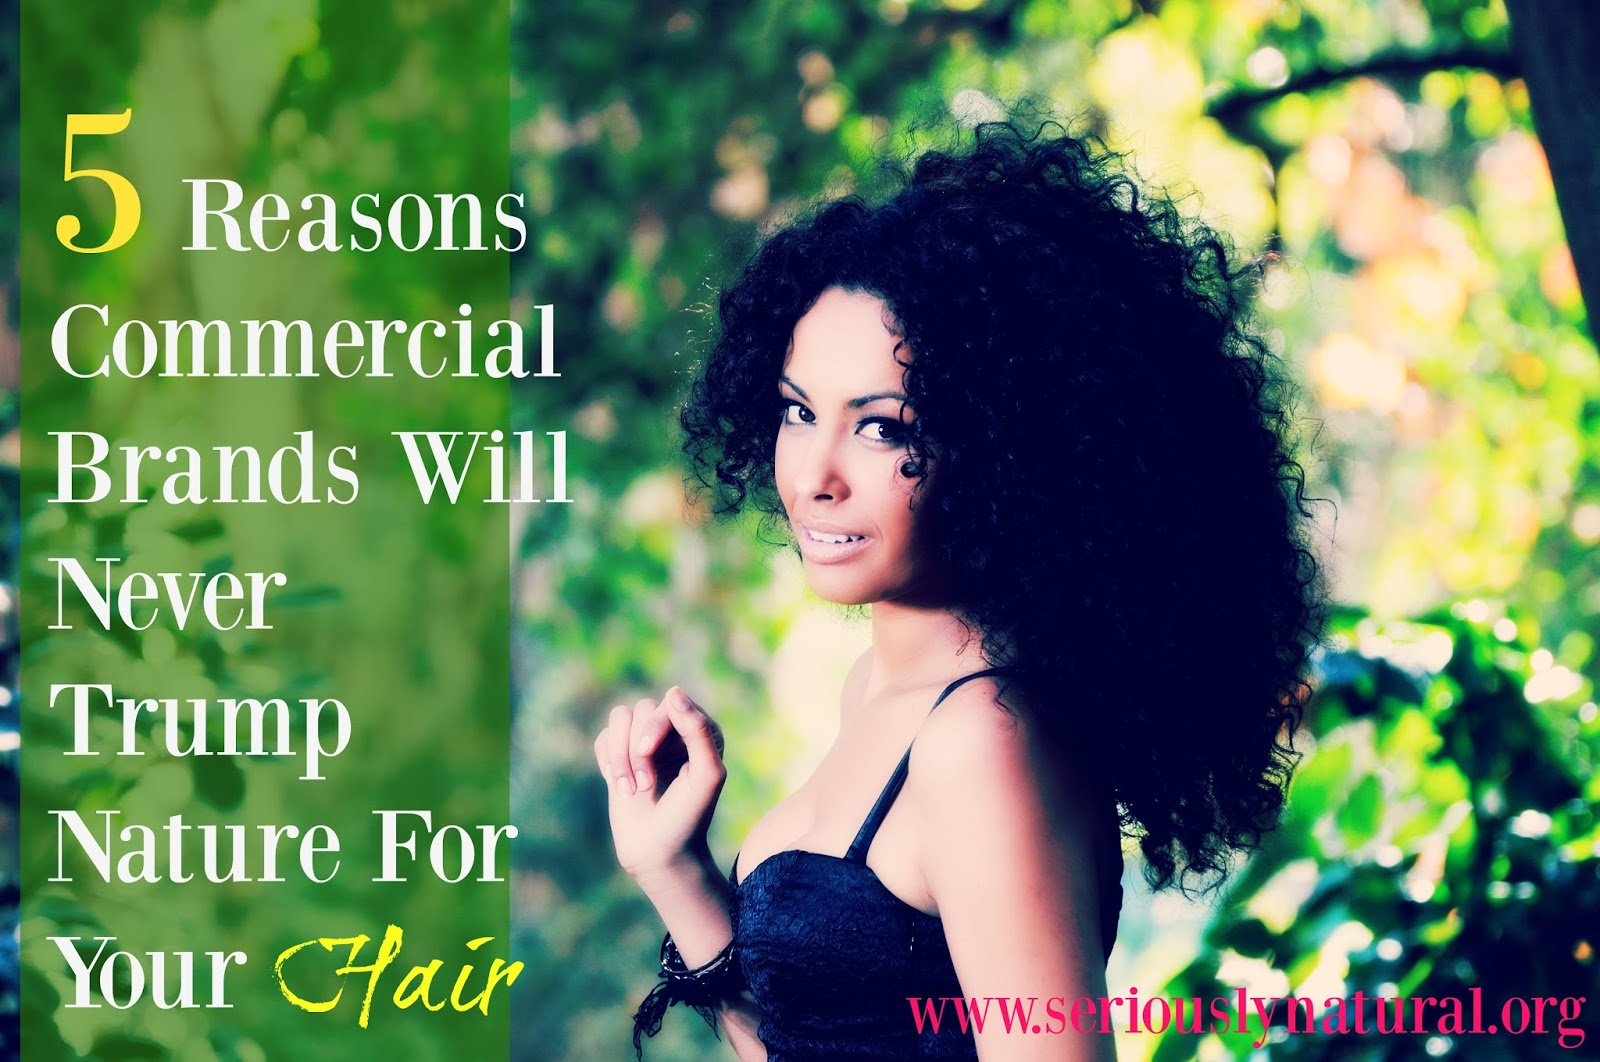 5 Reasons Commercial Brands Will Never Trump Nature For Your Hair